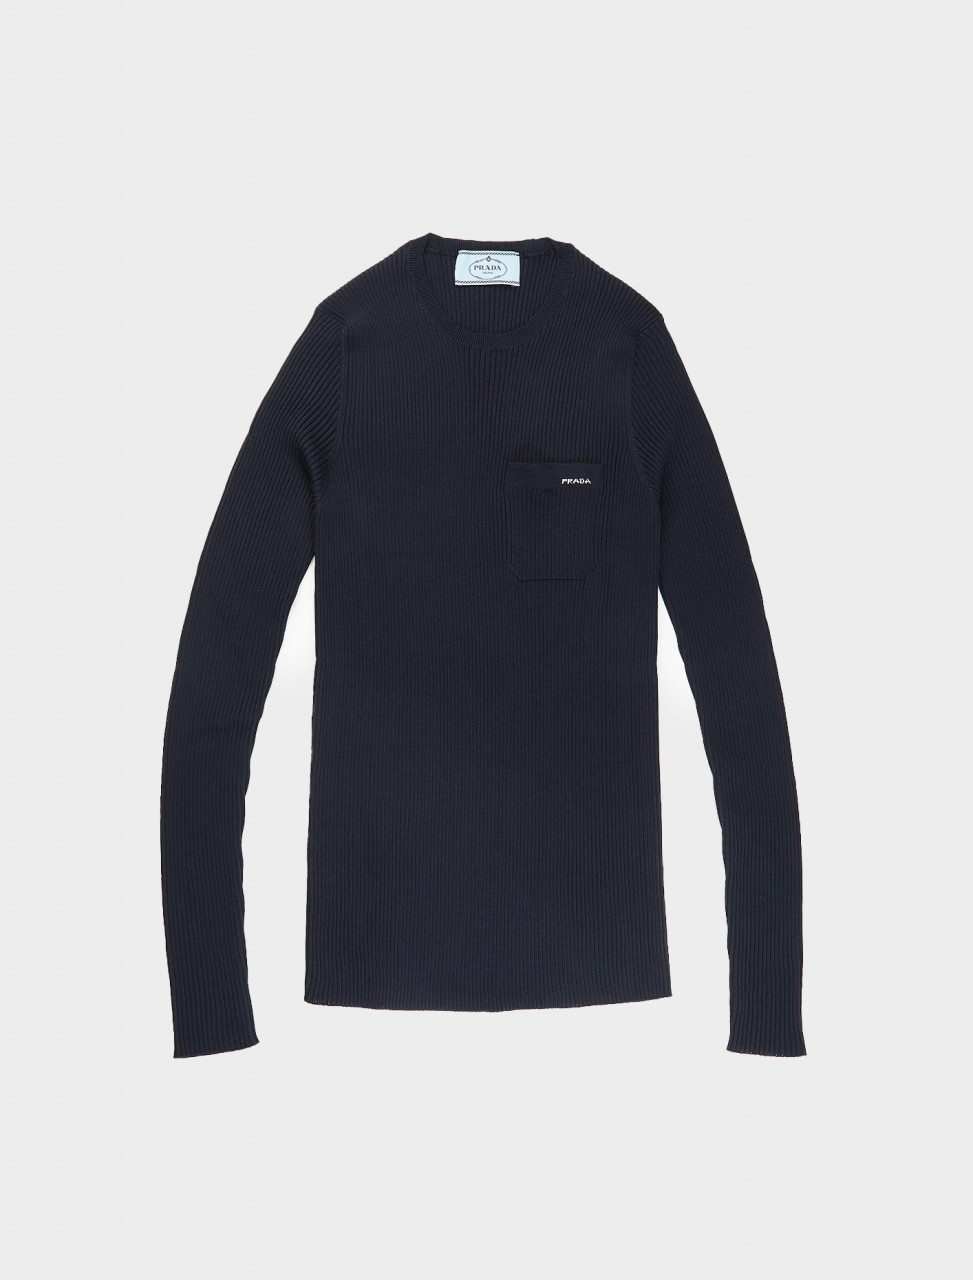 Prada Ribbed Long Sleeve Top in Blue